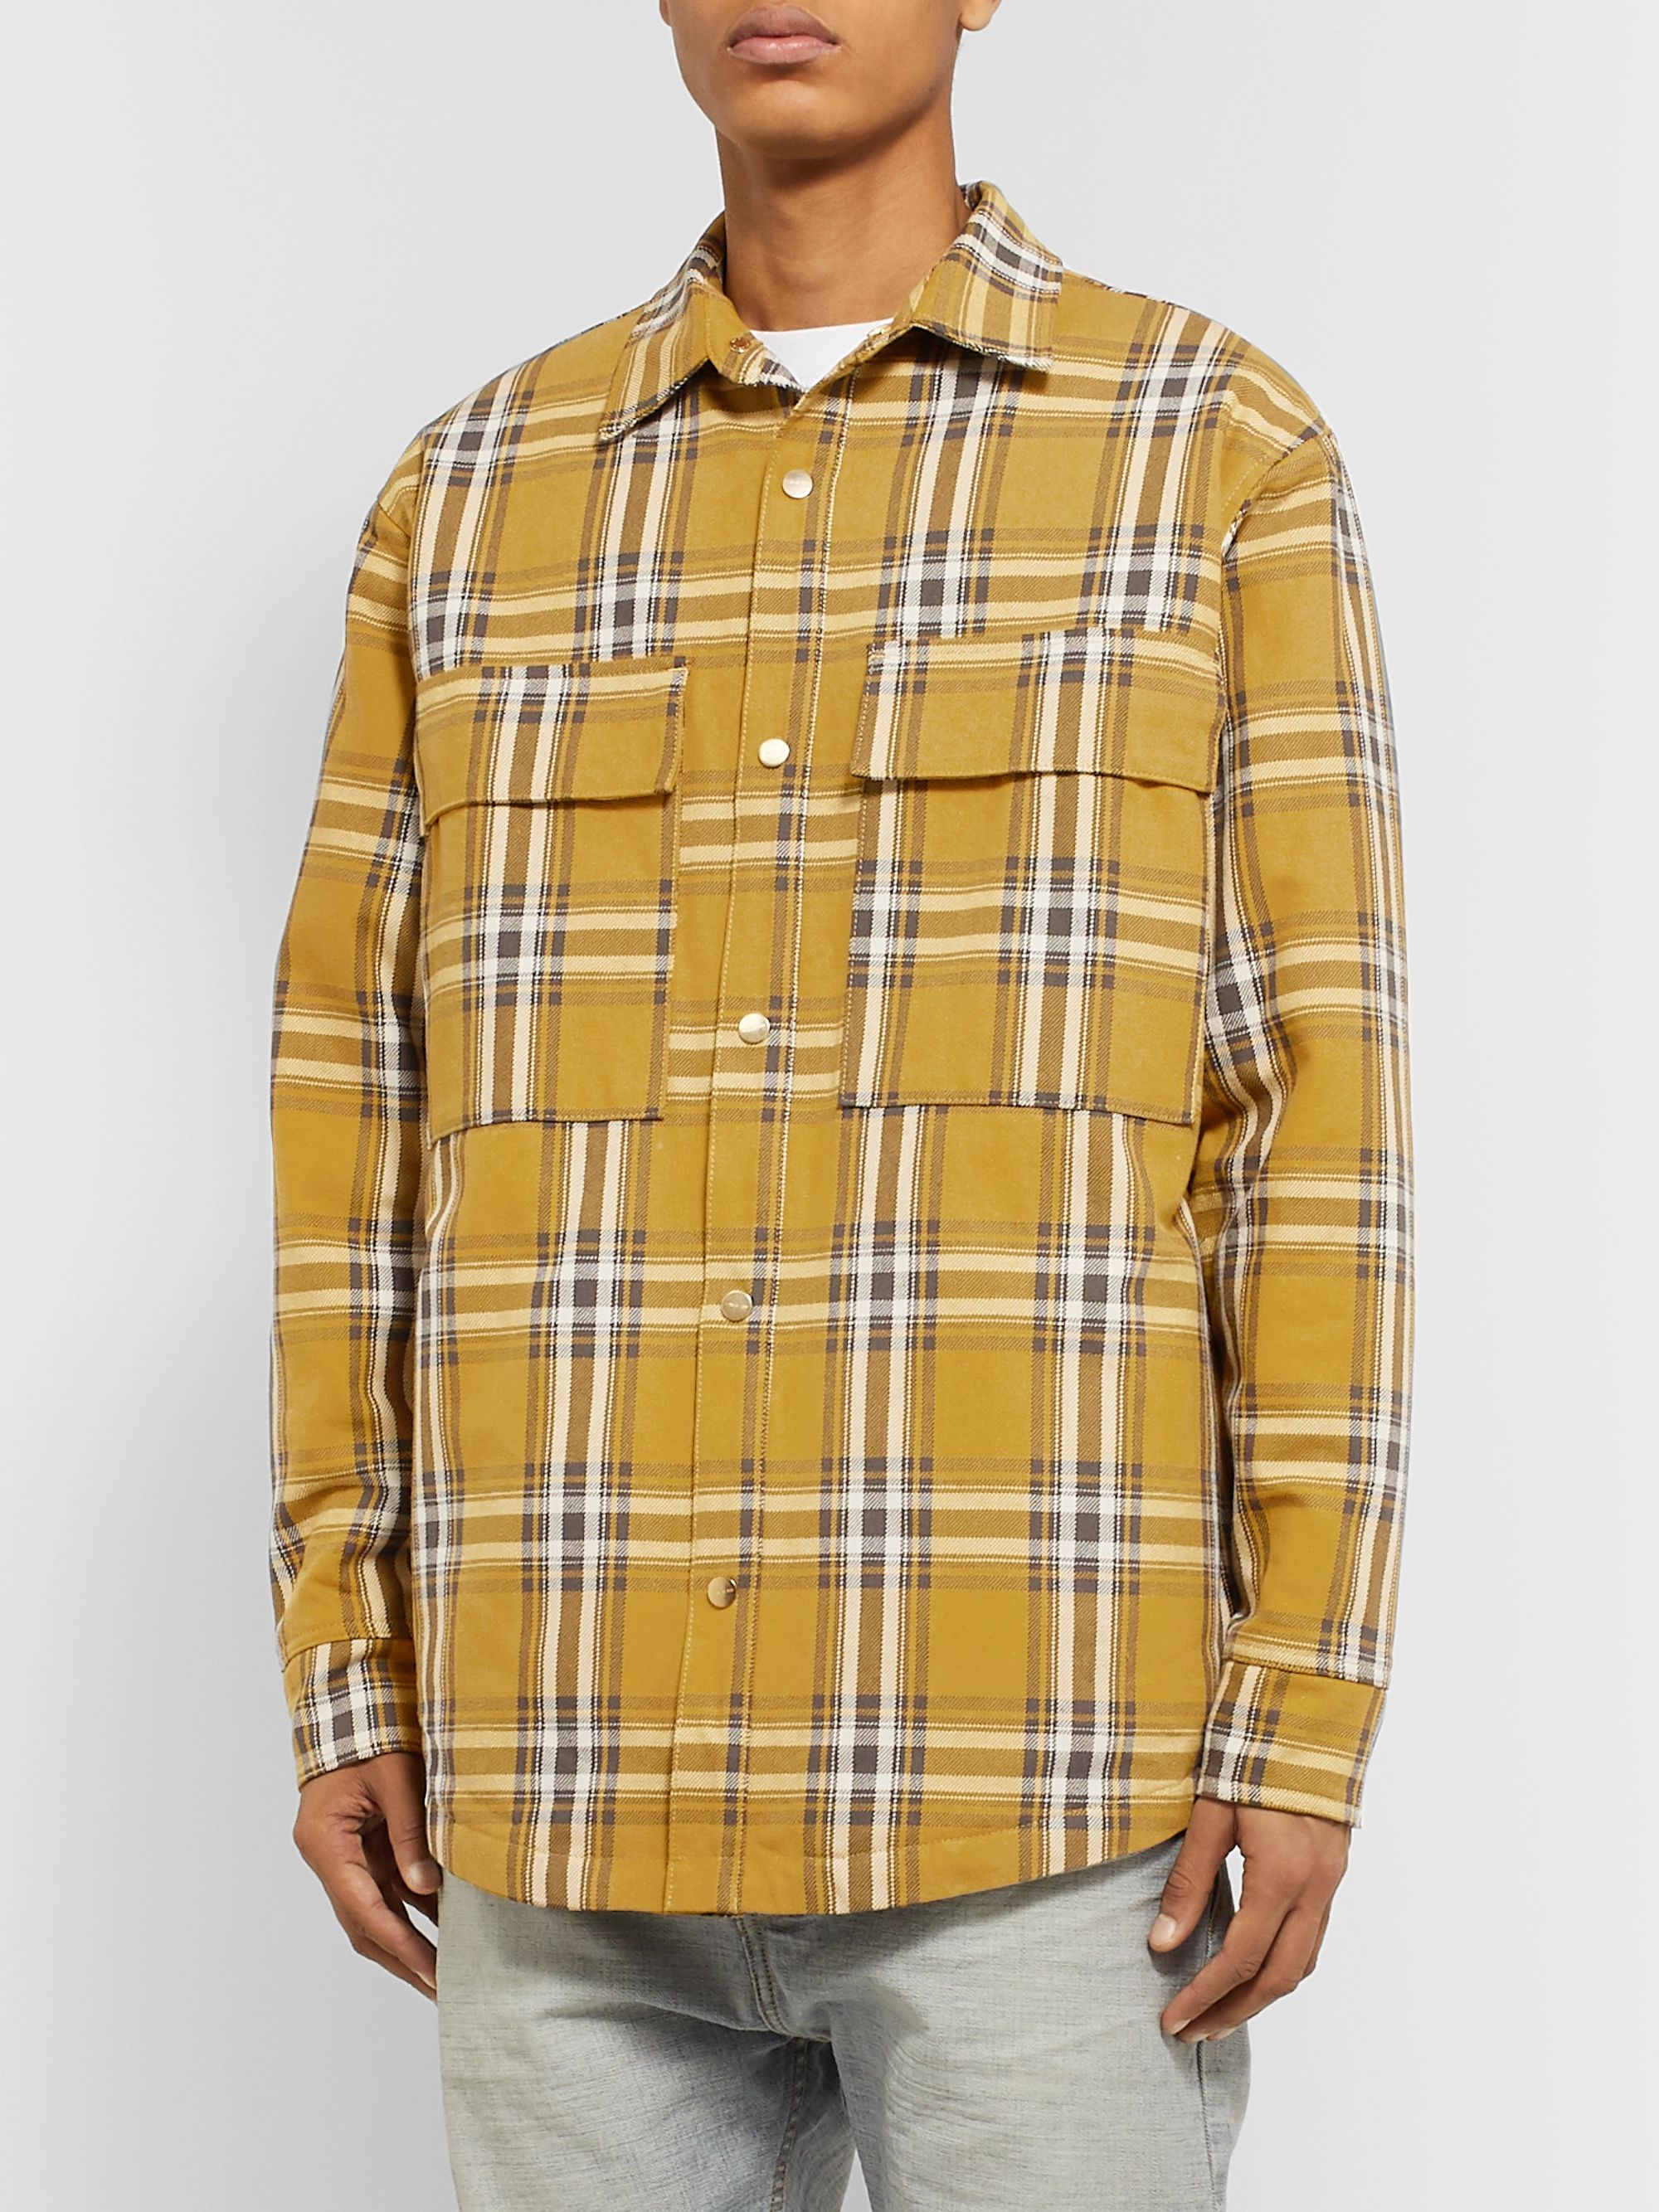 Fear of God Oversized Checked Cotton PrimaLoft Overshirt